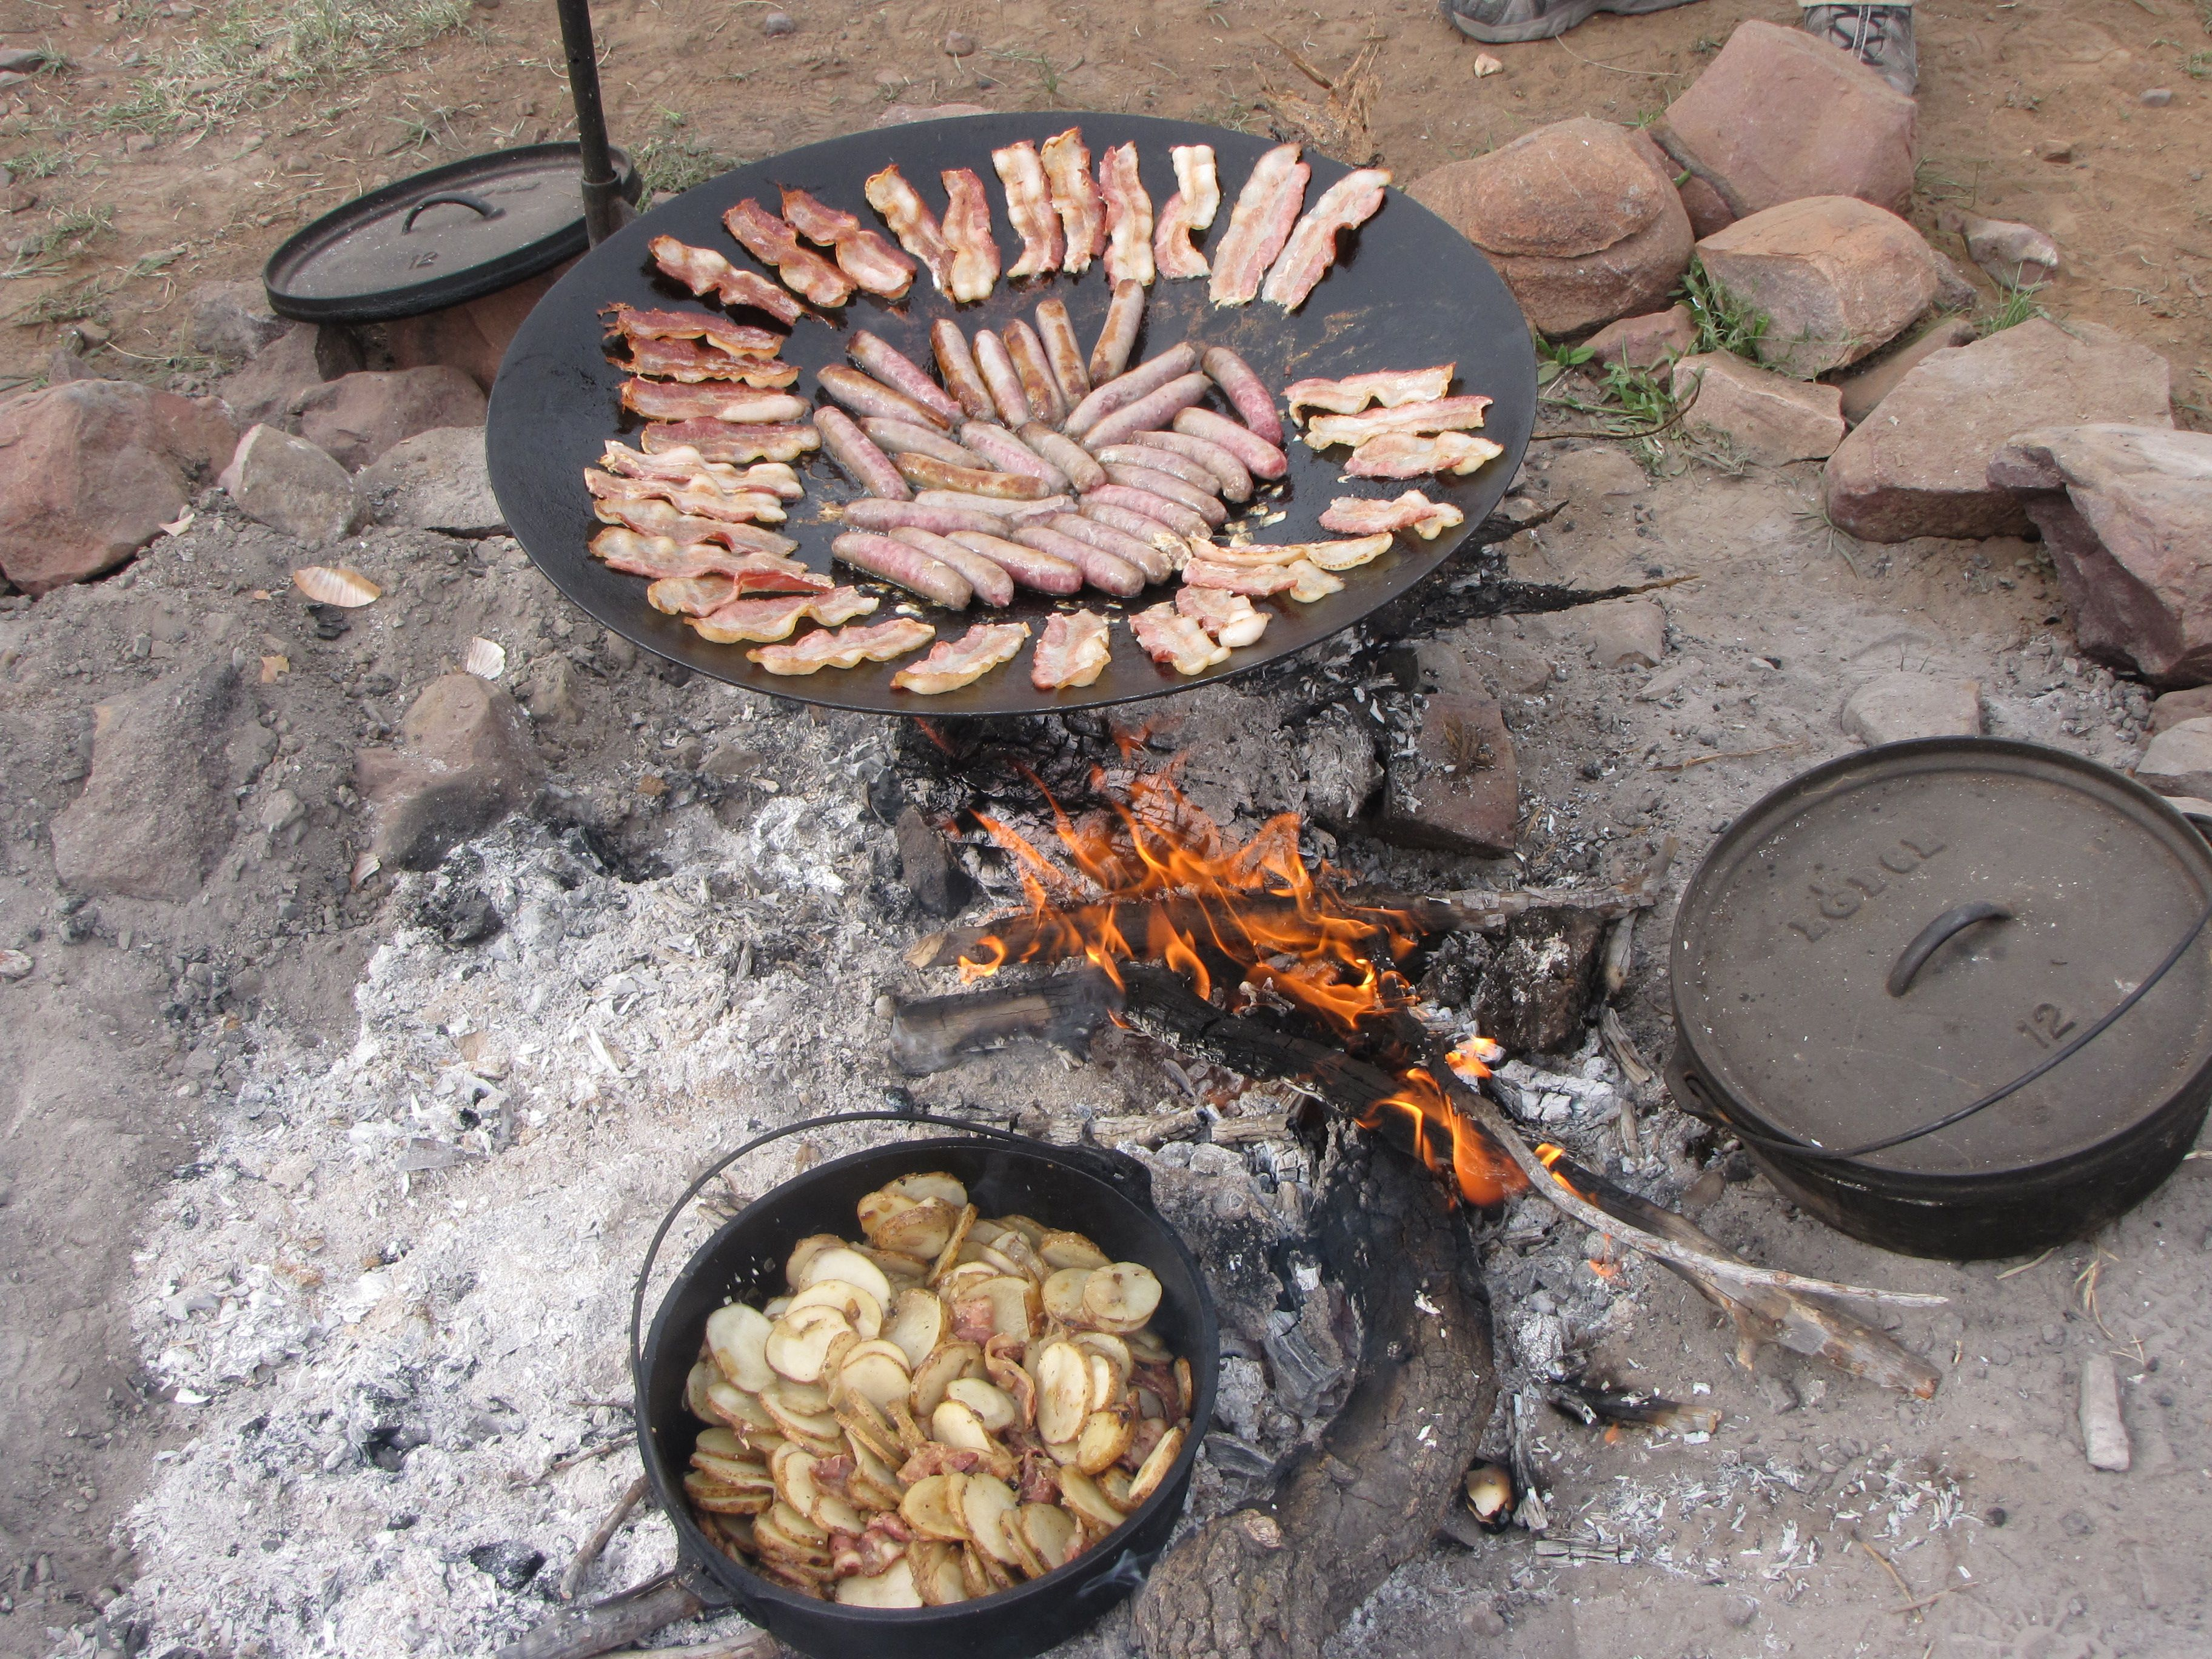 This is real camp fire cooking! No tin foil packets. Cast iron Dutch ovens and a homemade wok! YUMMY!!